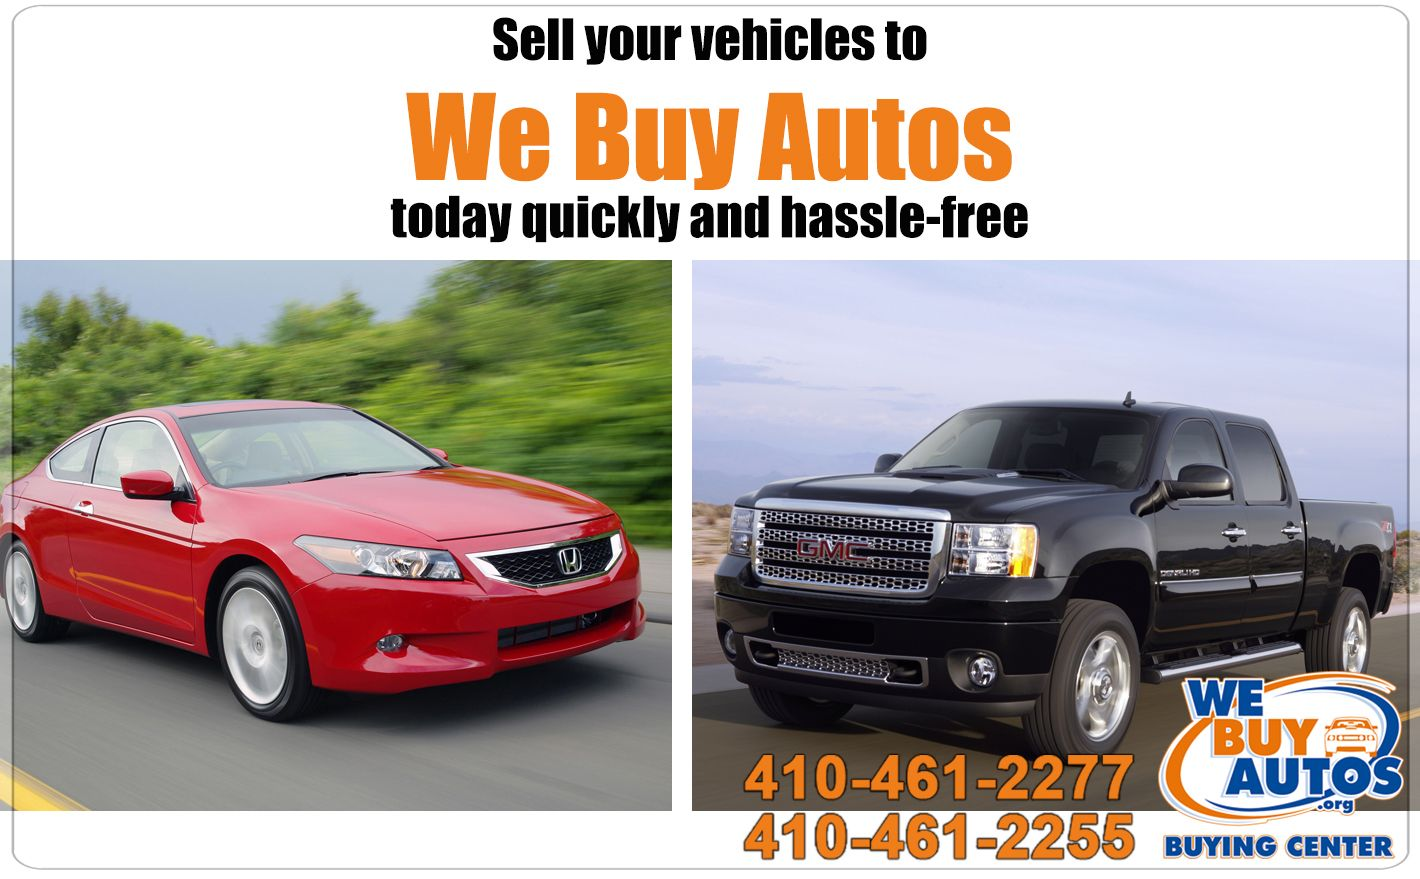 Sell your vehicles to We Buy Autos today quickly and hassle-free ...